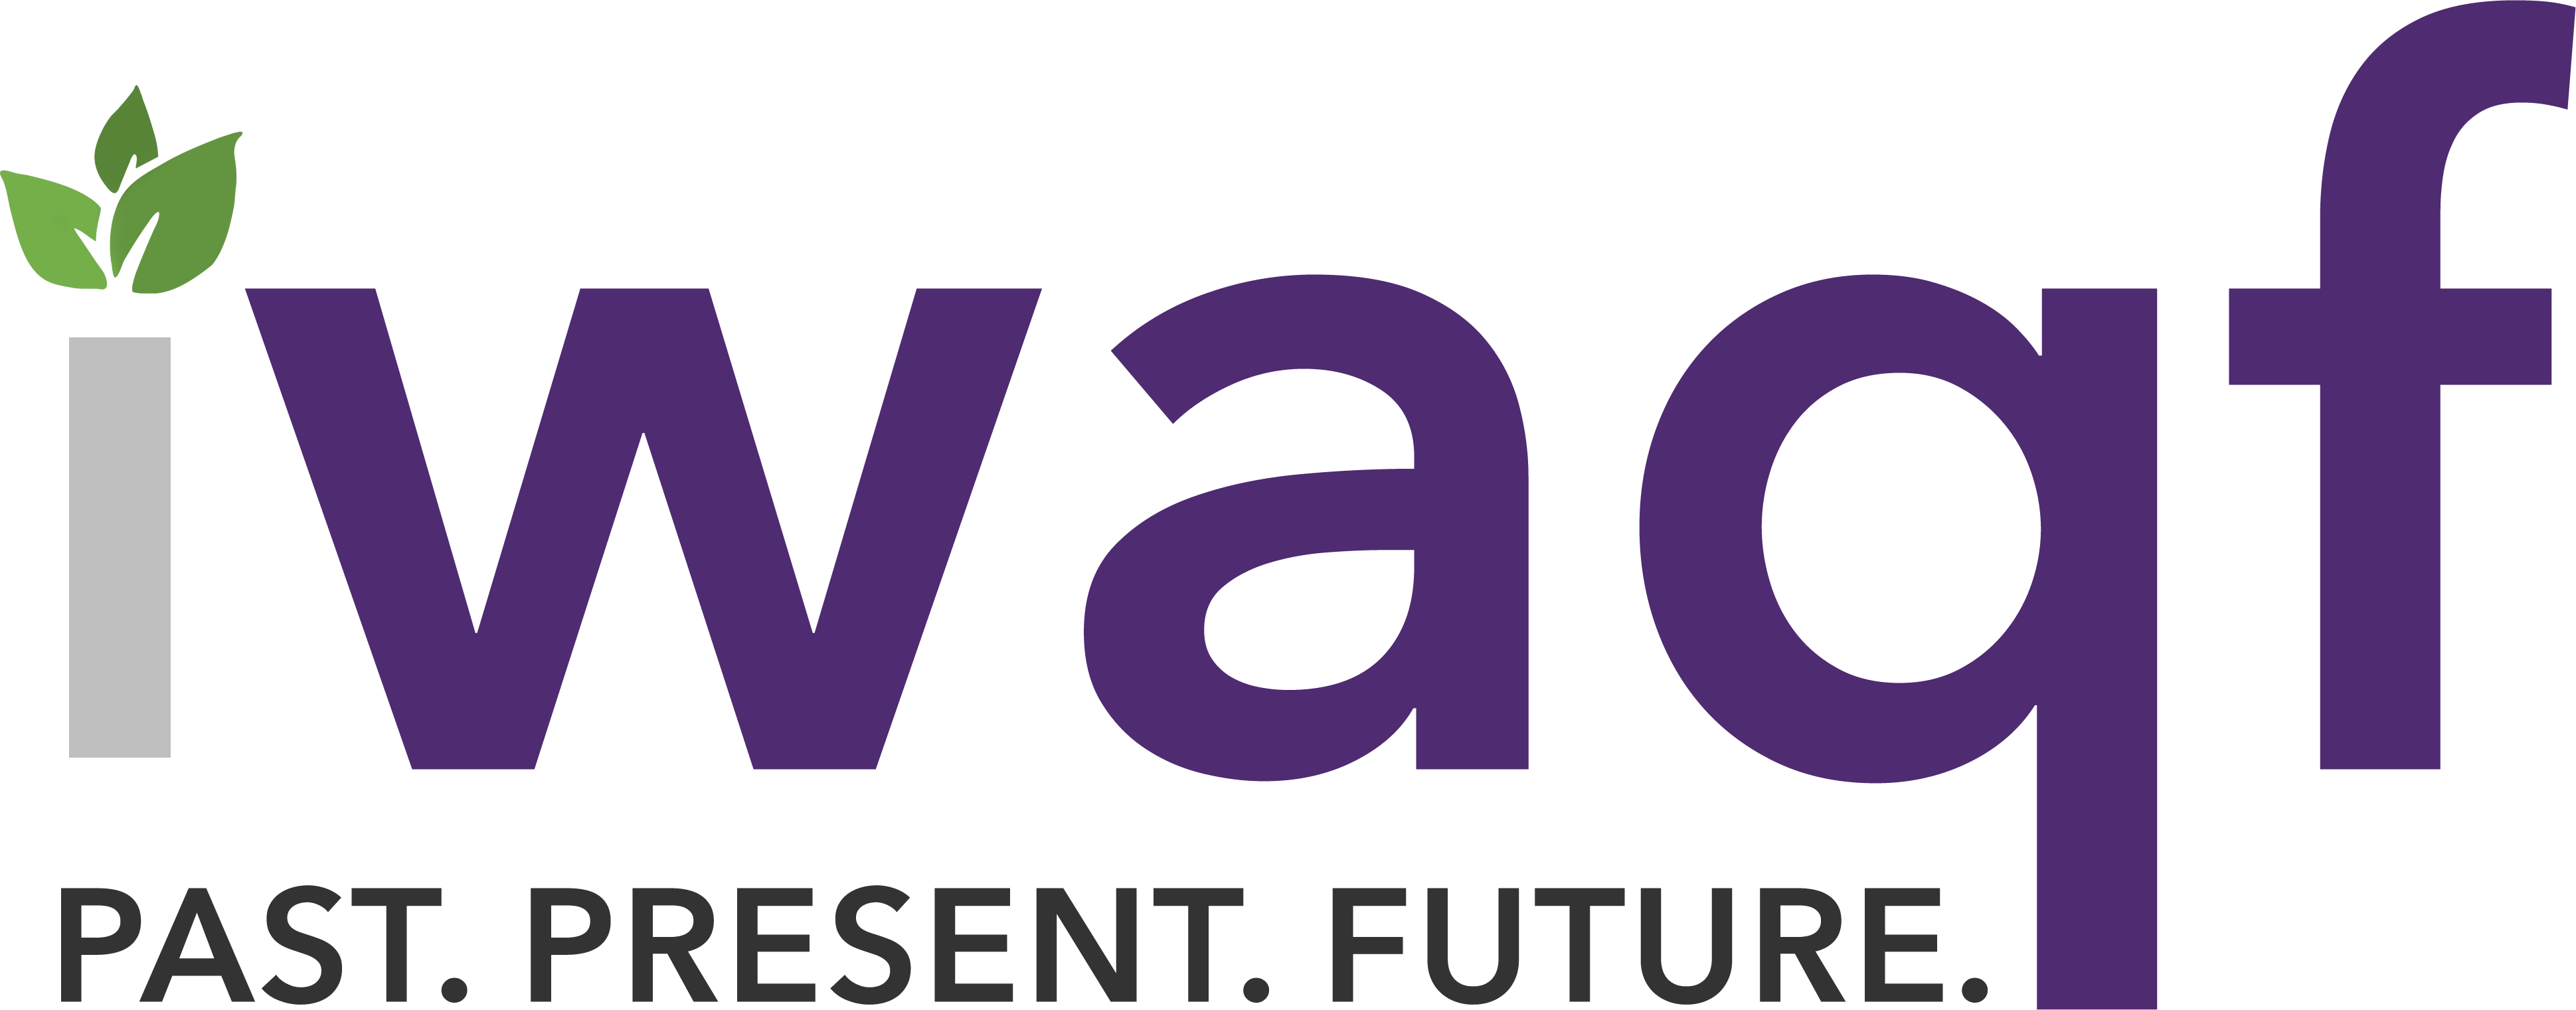 main-logo-transparent